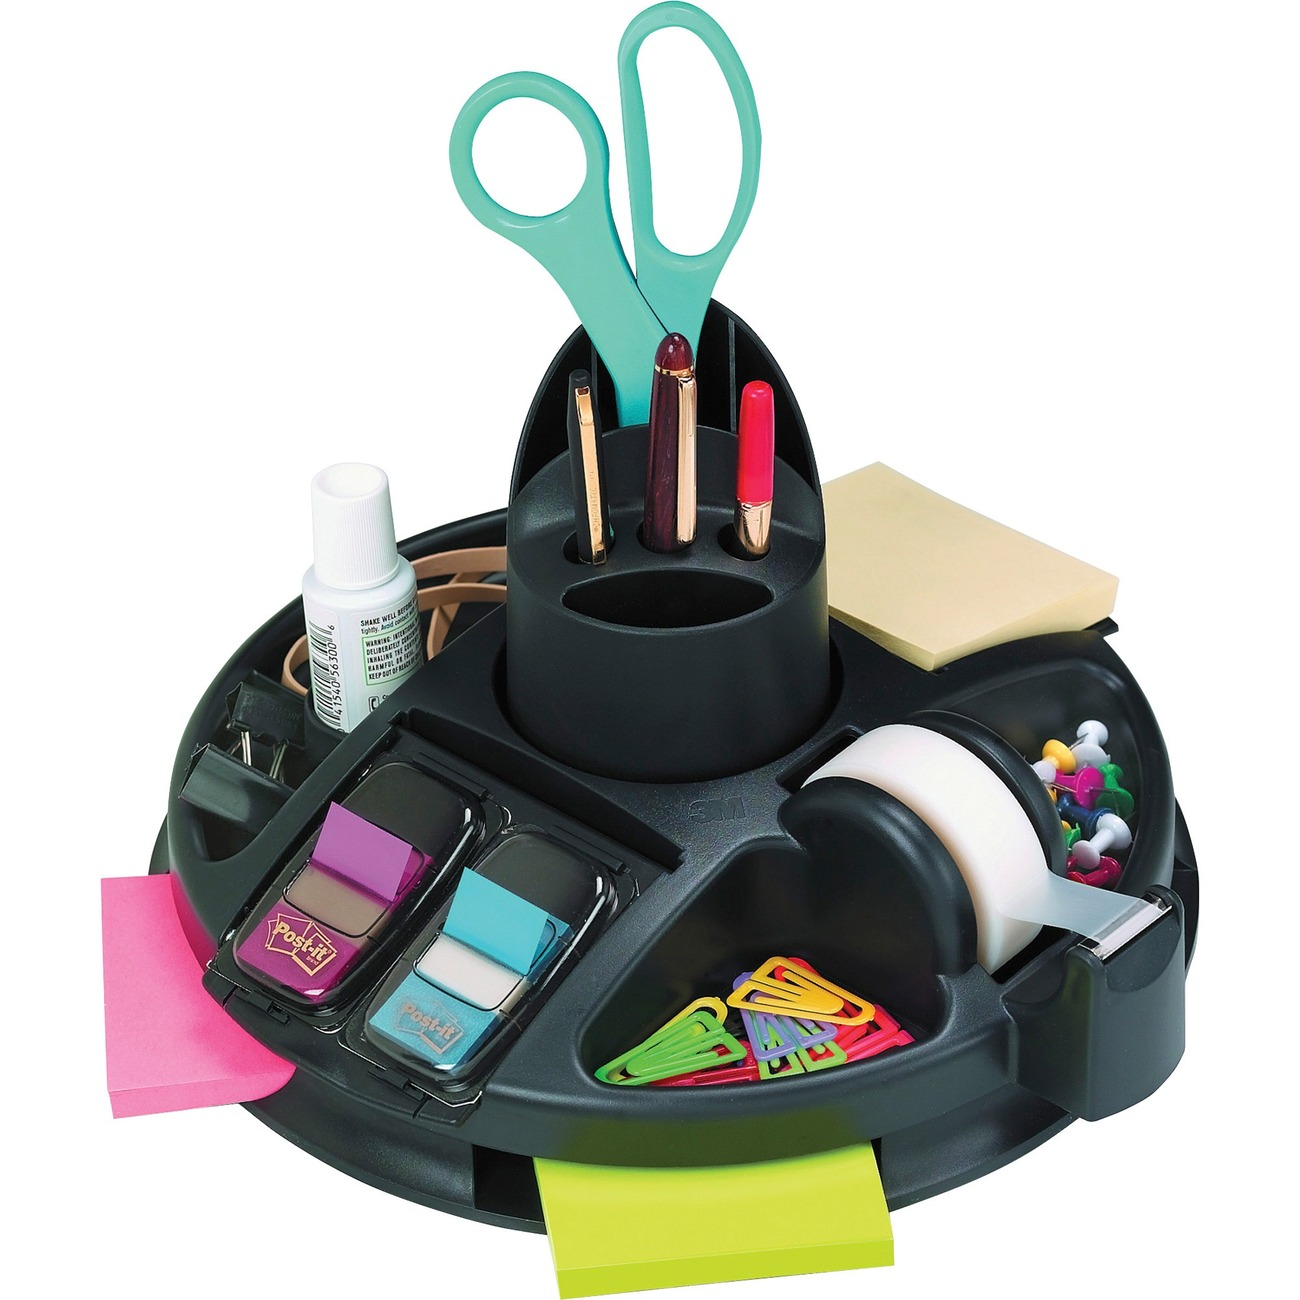 15 desk and drawer organizers to declutter your desk - 3m desk drawer organizer ...